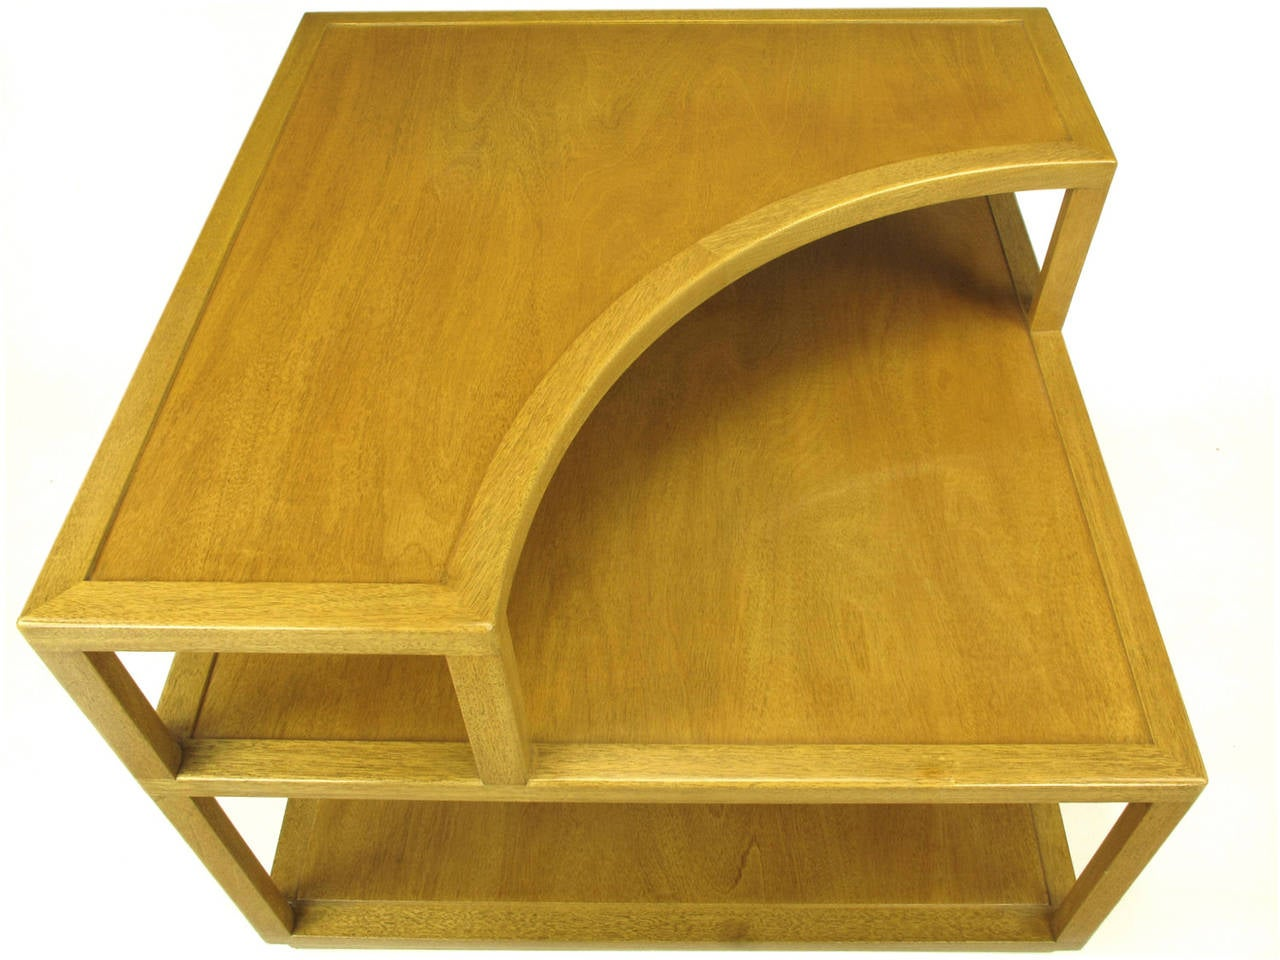 Edward Wormley Bleached Mahogany Corner Table for Dunbar For Sale 4